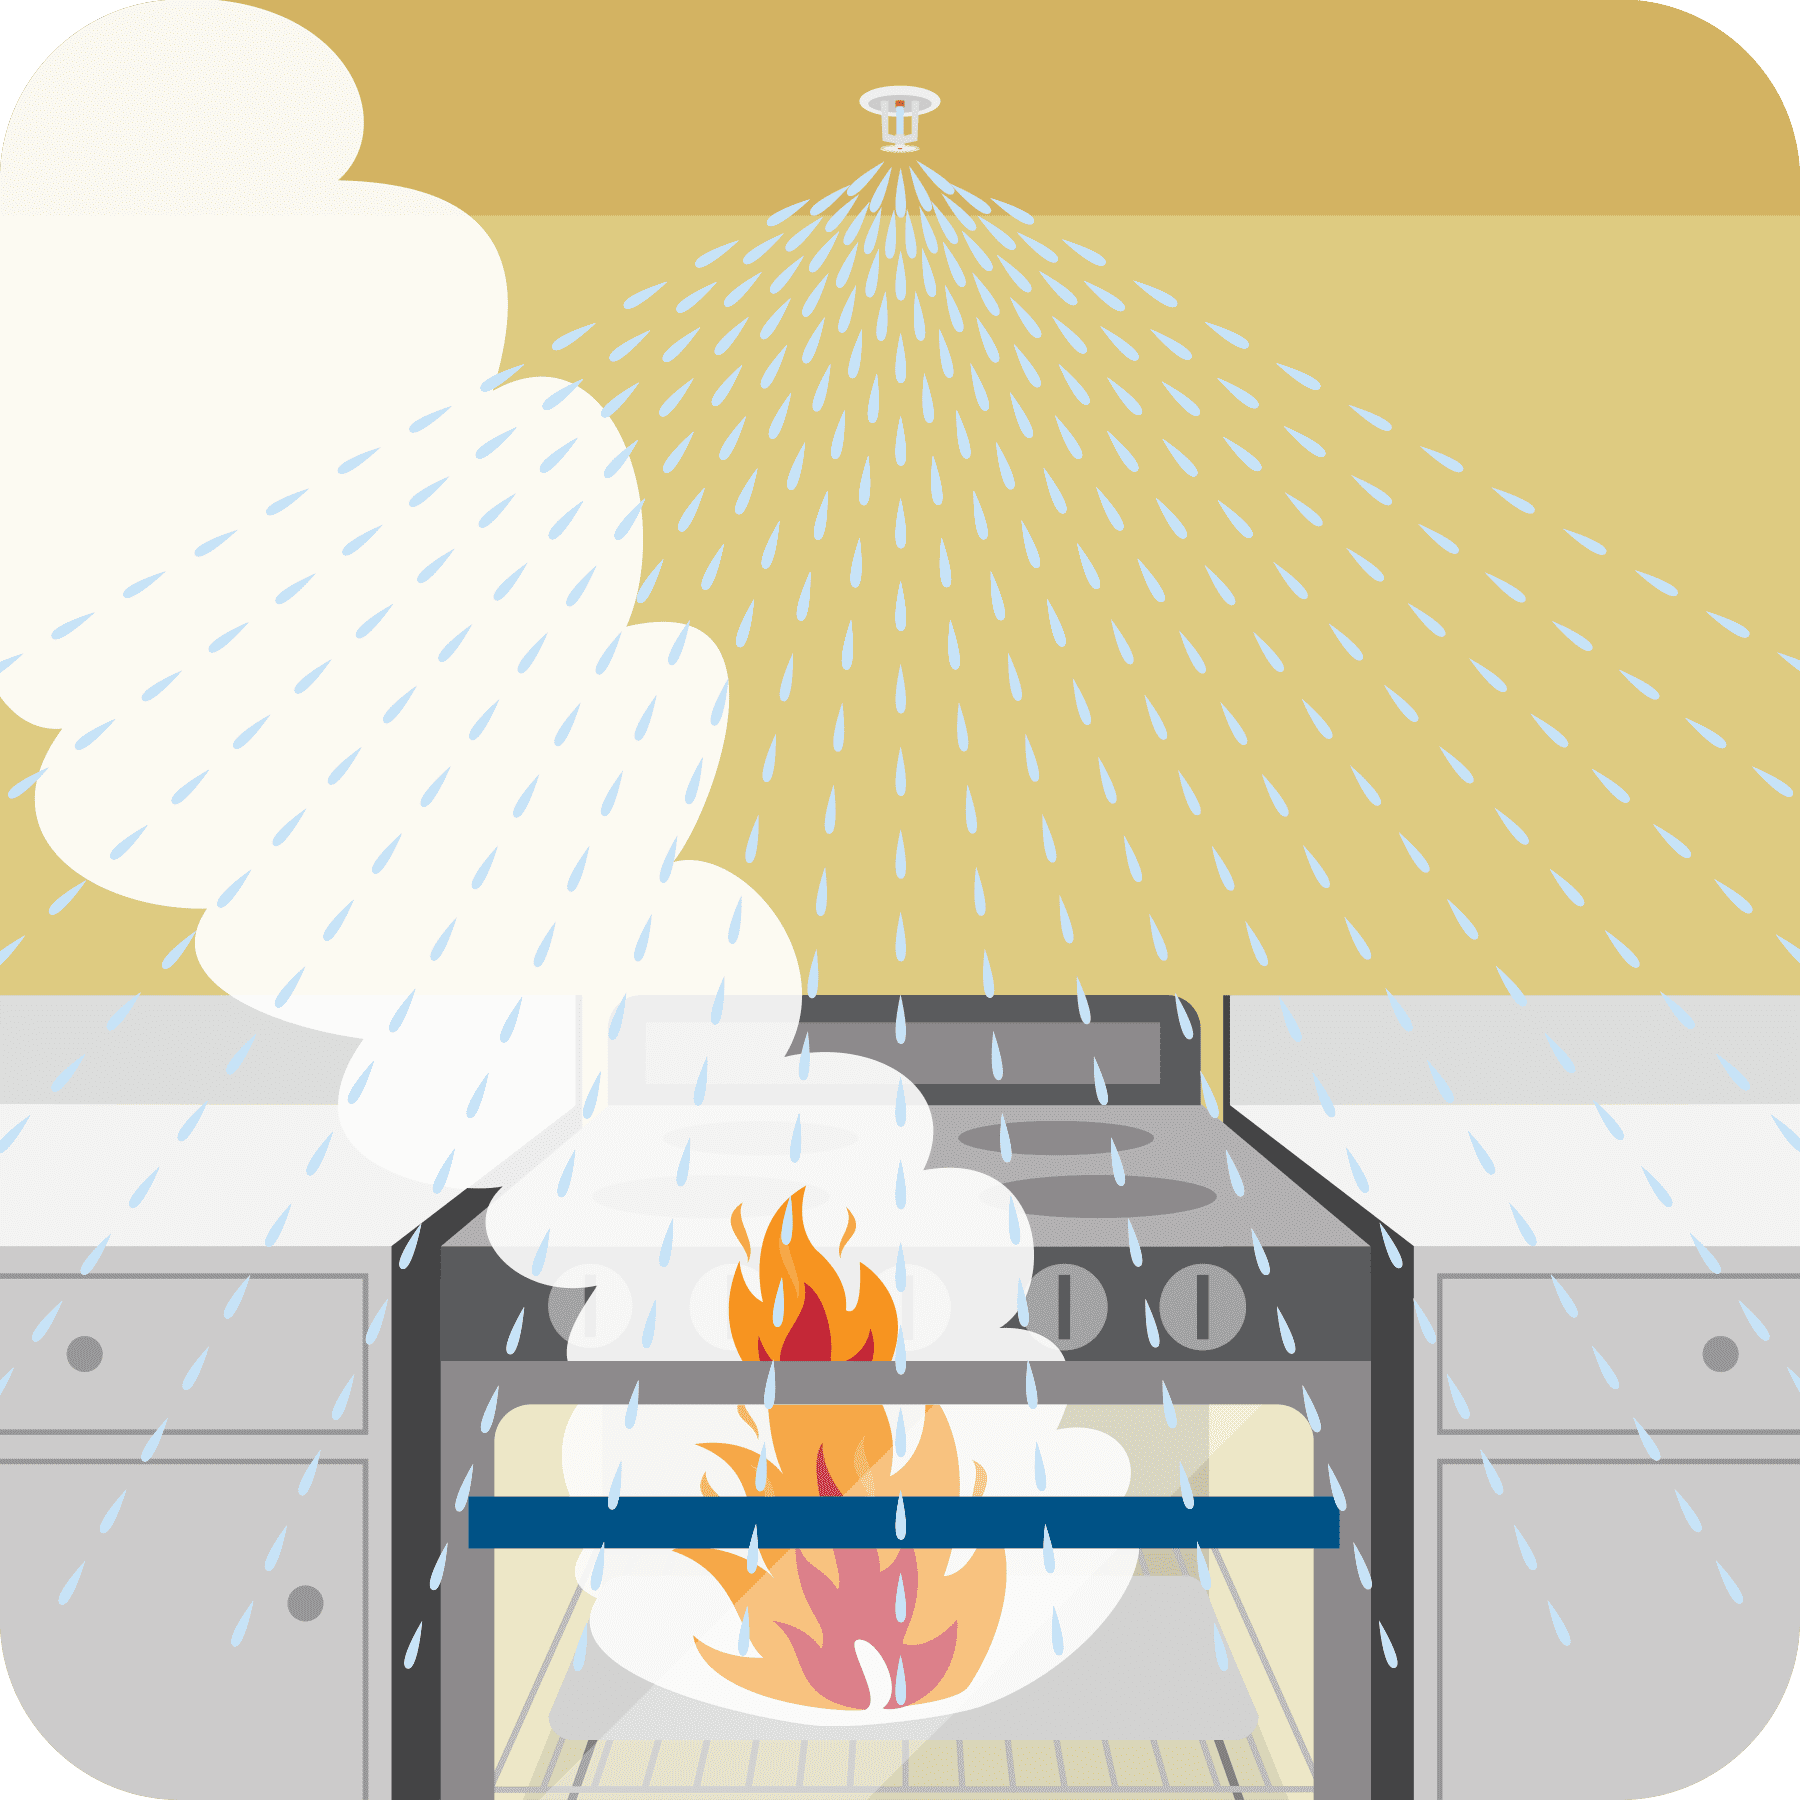 A fire sprinkler activates for an oven fire in the kitchen.